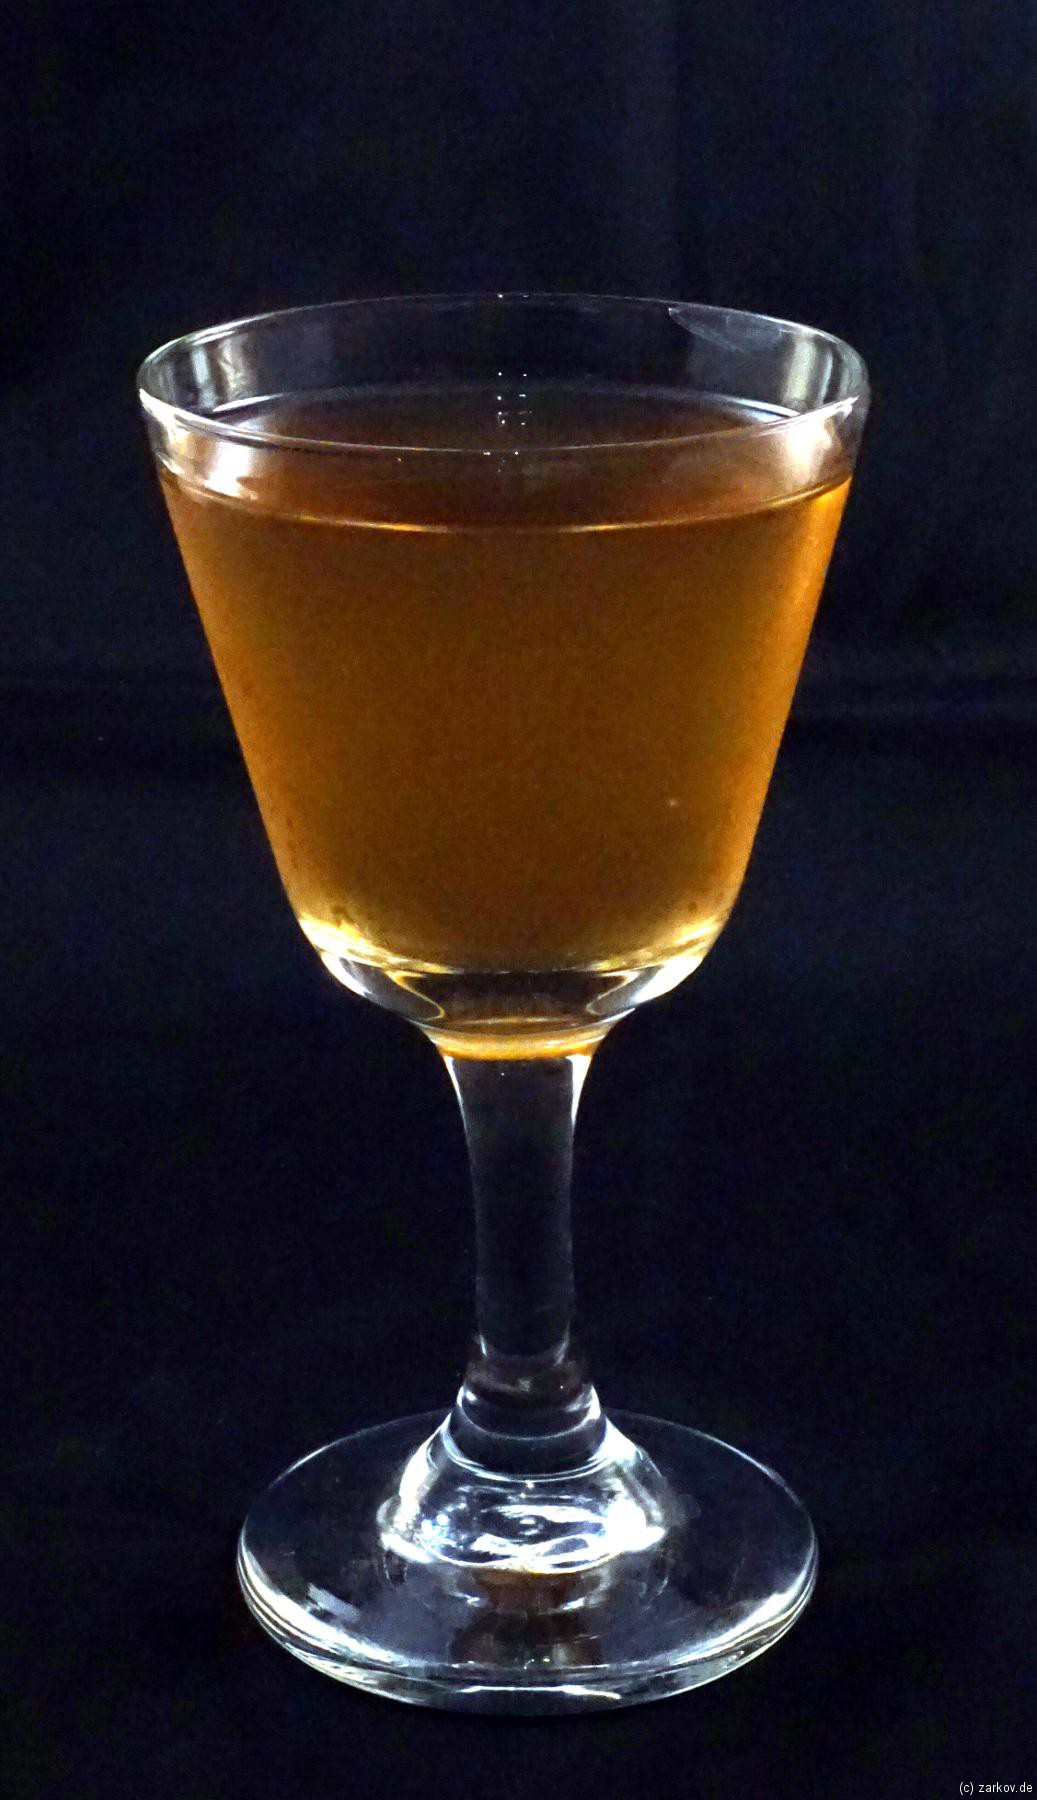 Alberti's Night Cocktail